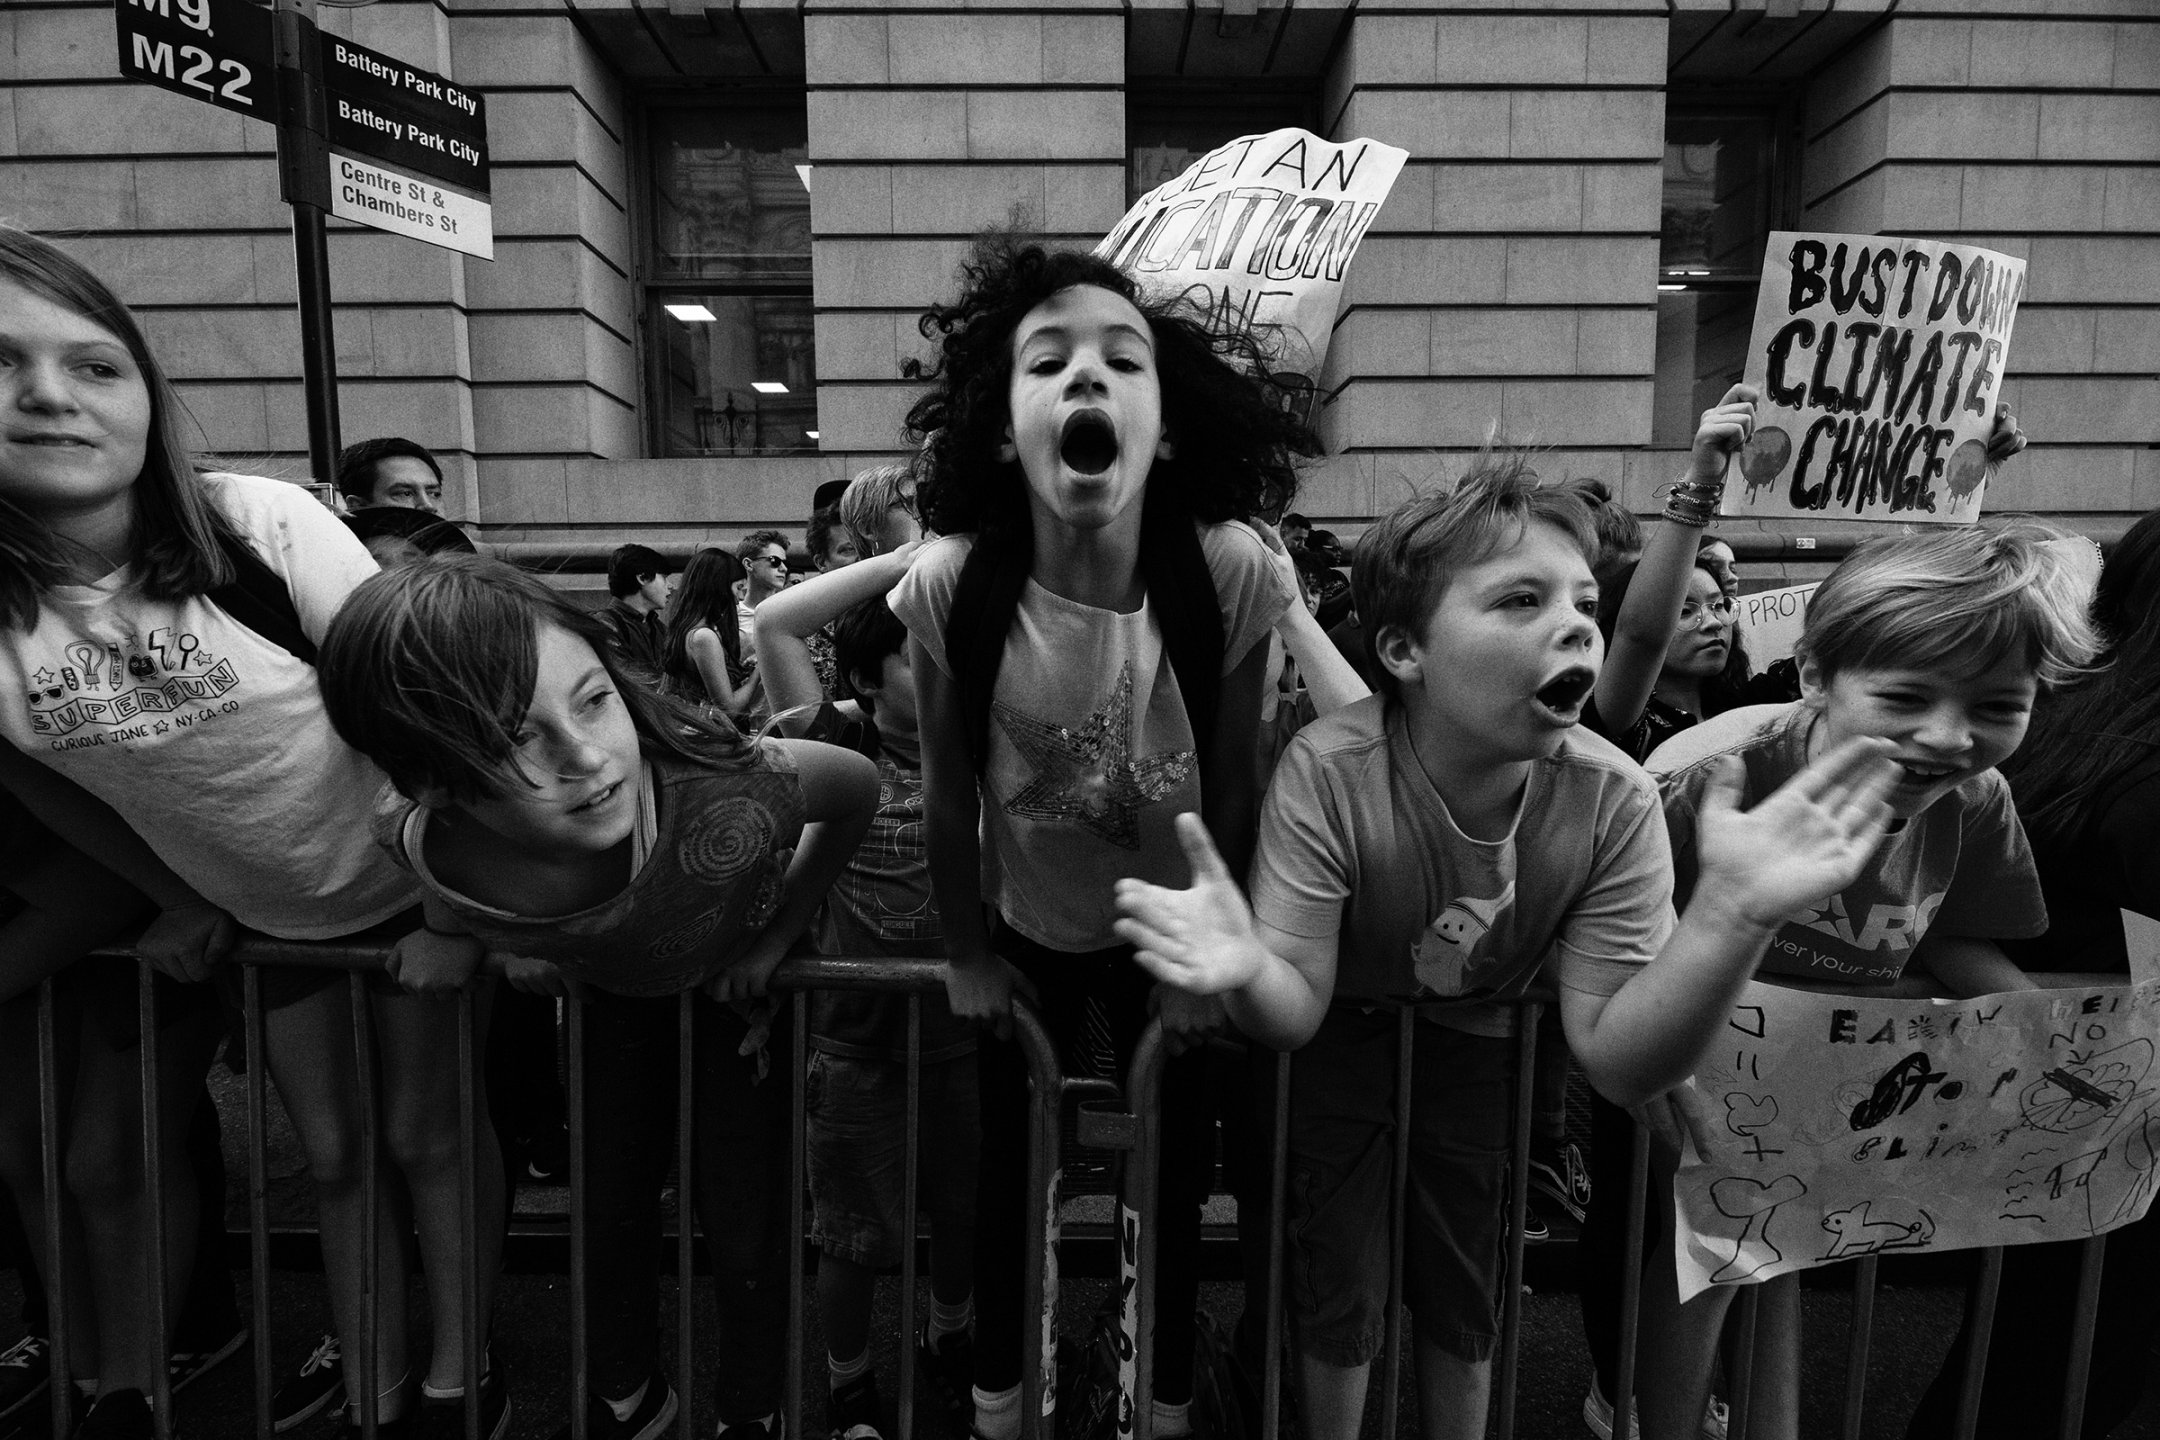 Children chant during a climate protest in New York City on Sept. 20. They were among 4 million people who joined the global climate strike that day, in what was the largest climate demonstration in human history.